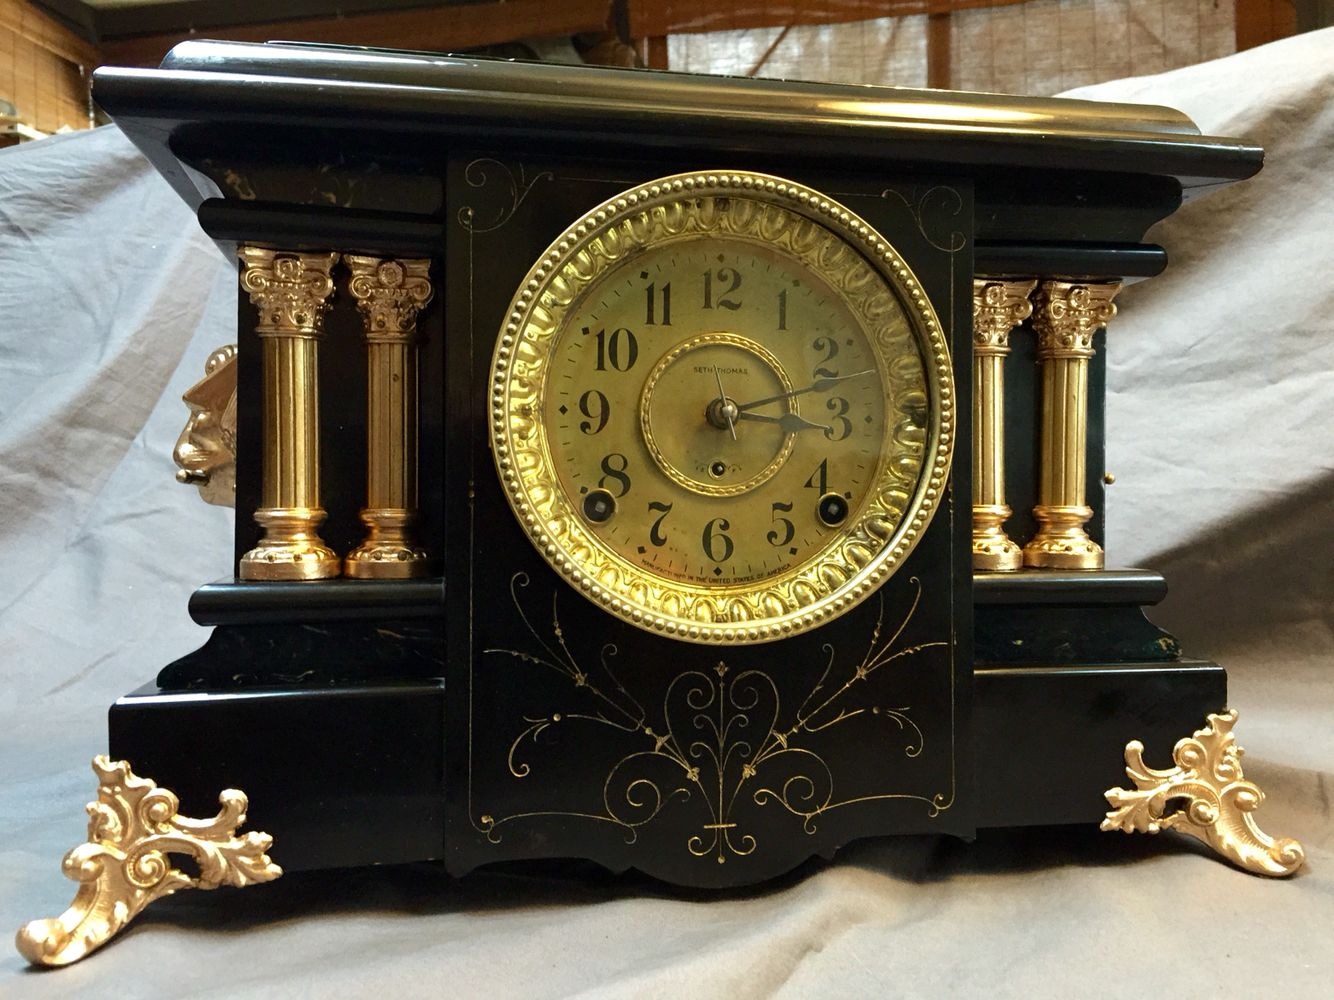 100 Years Old Seth Thomas Mantle Clock Super Fantastic Sold On Ebay Mantle Clock Clock Antique Clocks